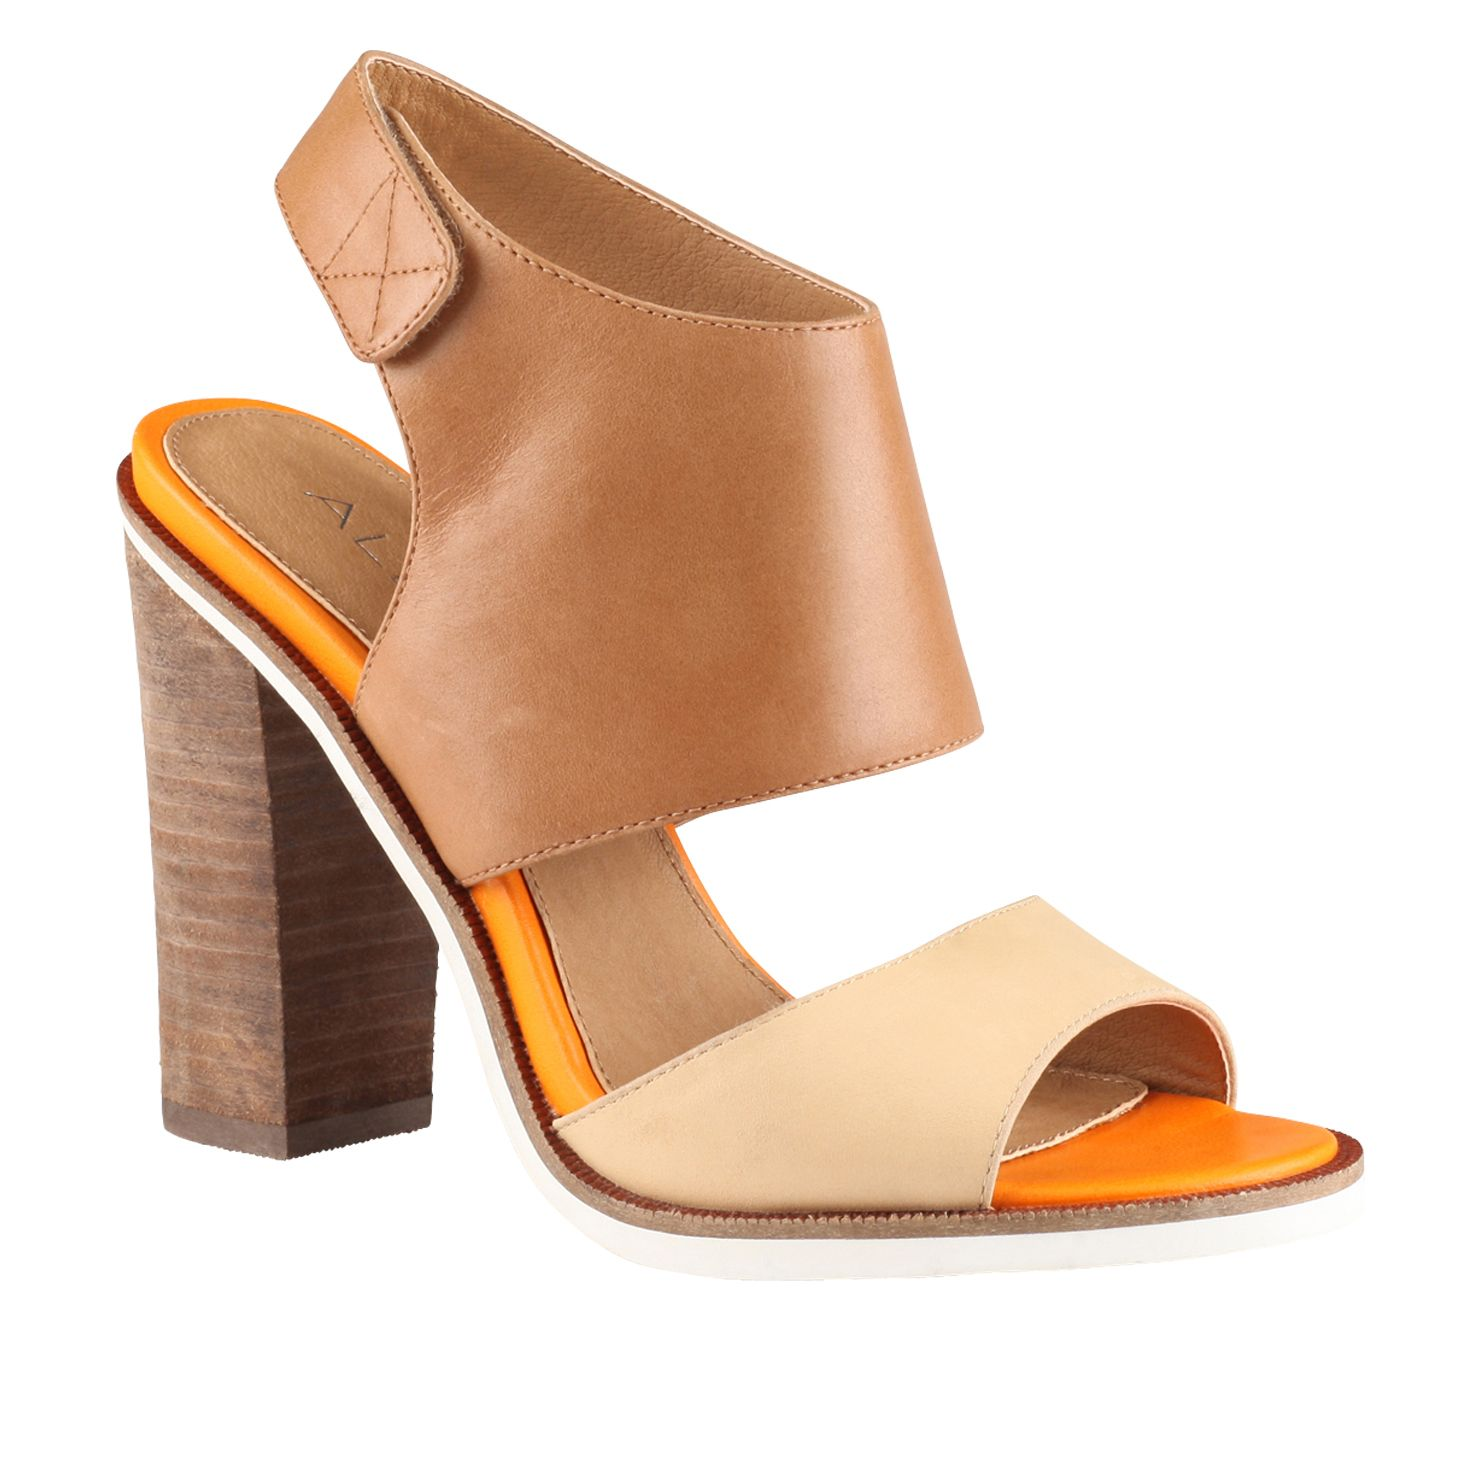 Eling cut out block heel sandals